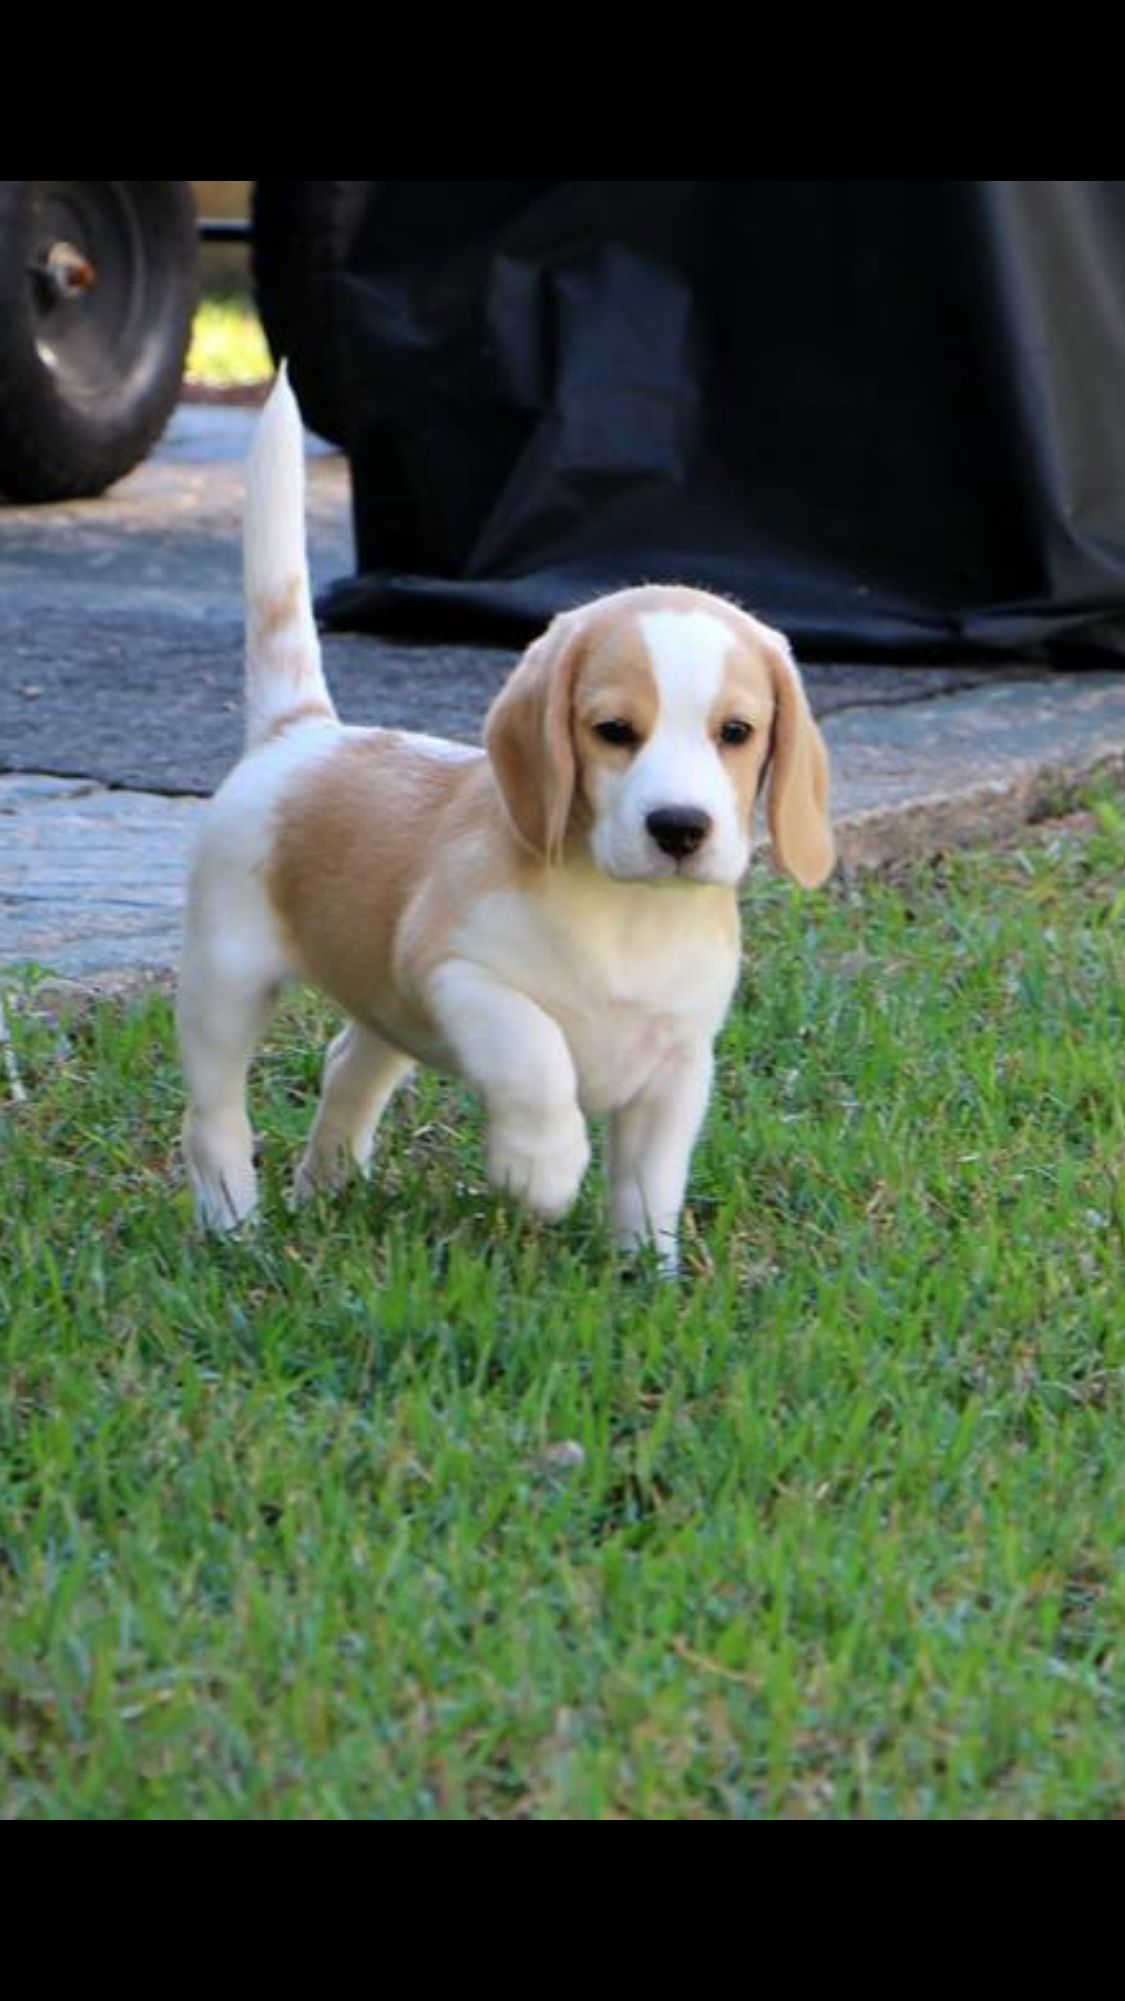 New 25 Years Old Birthday Plan Buying A Beagle And Naming Him